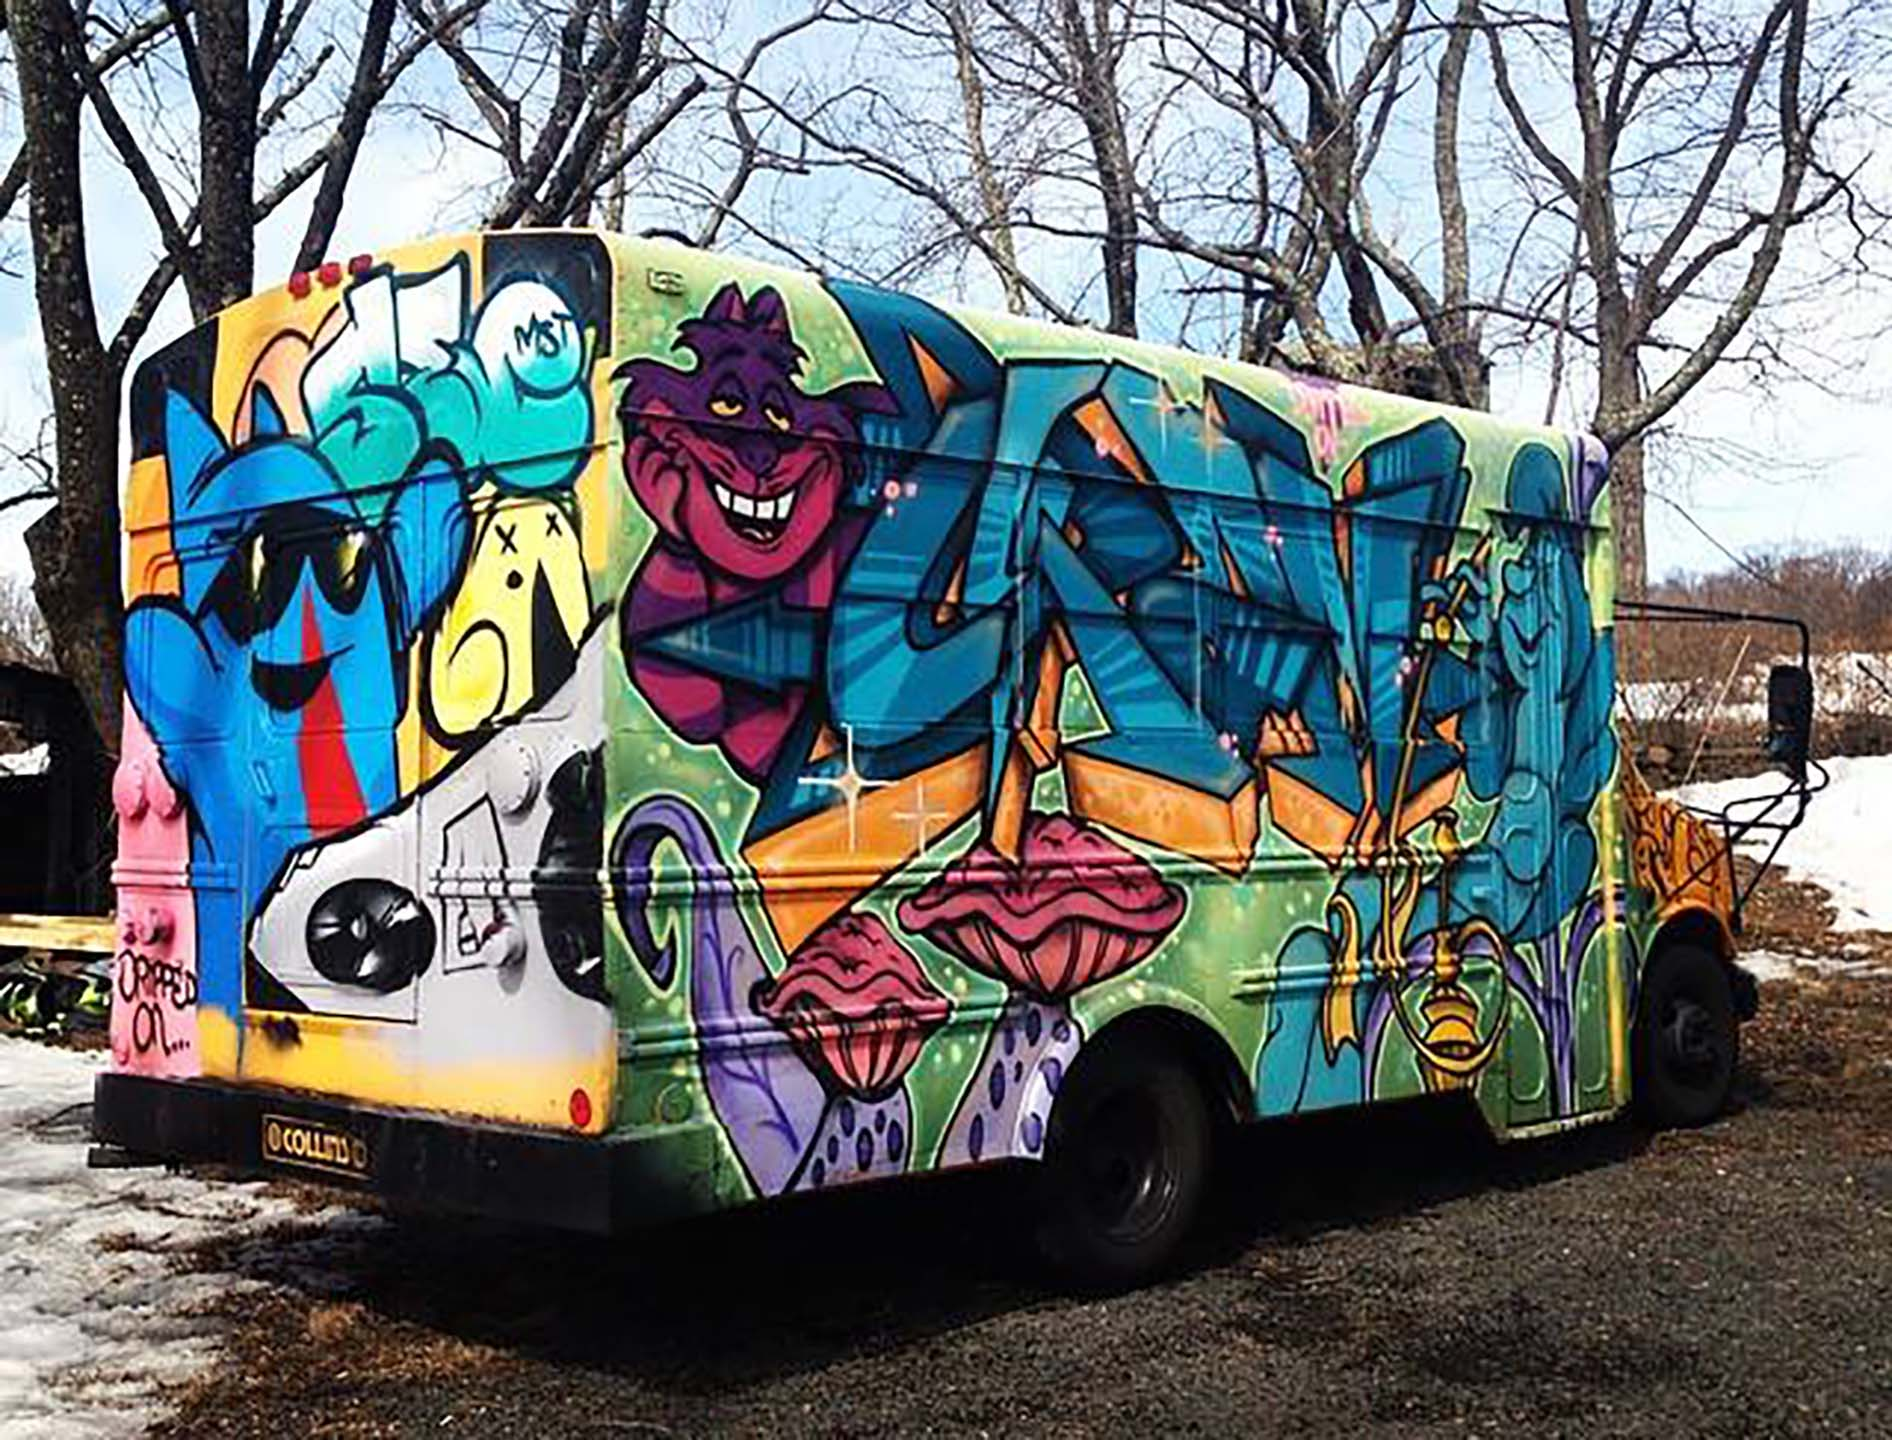 dripped-on-productions-electric-zoo-school-bus-mural